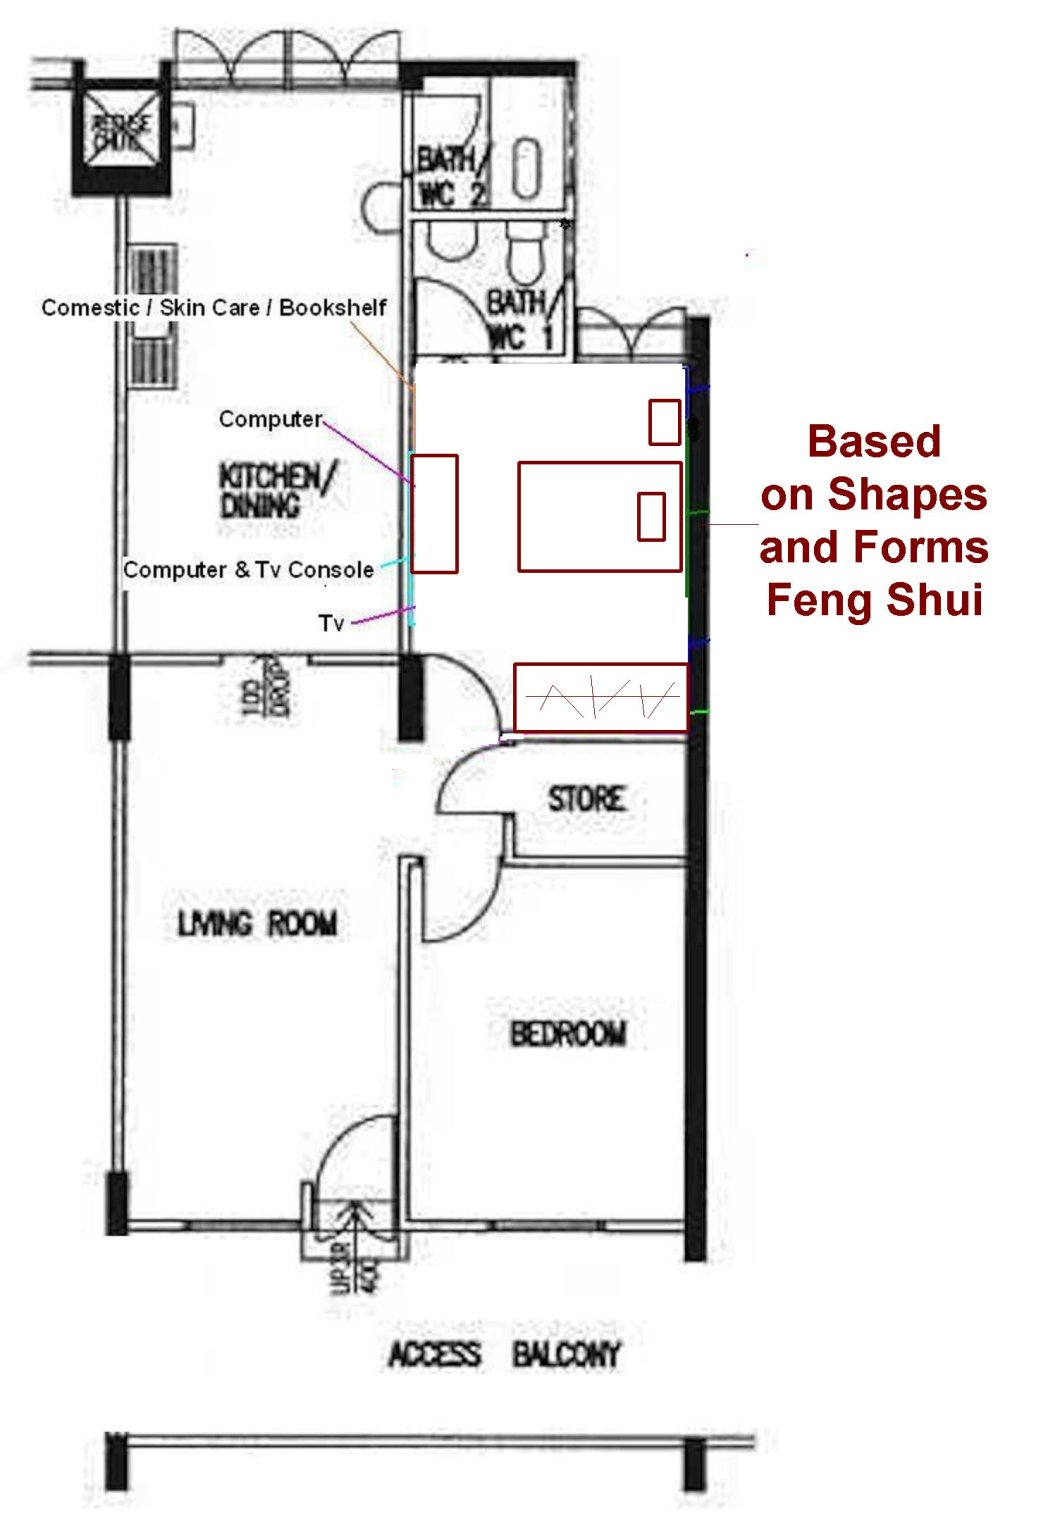 Feng Shui Rules For Your Bedroom Savae Org